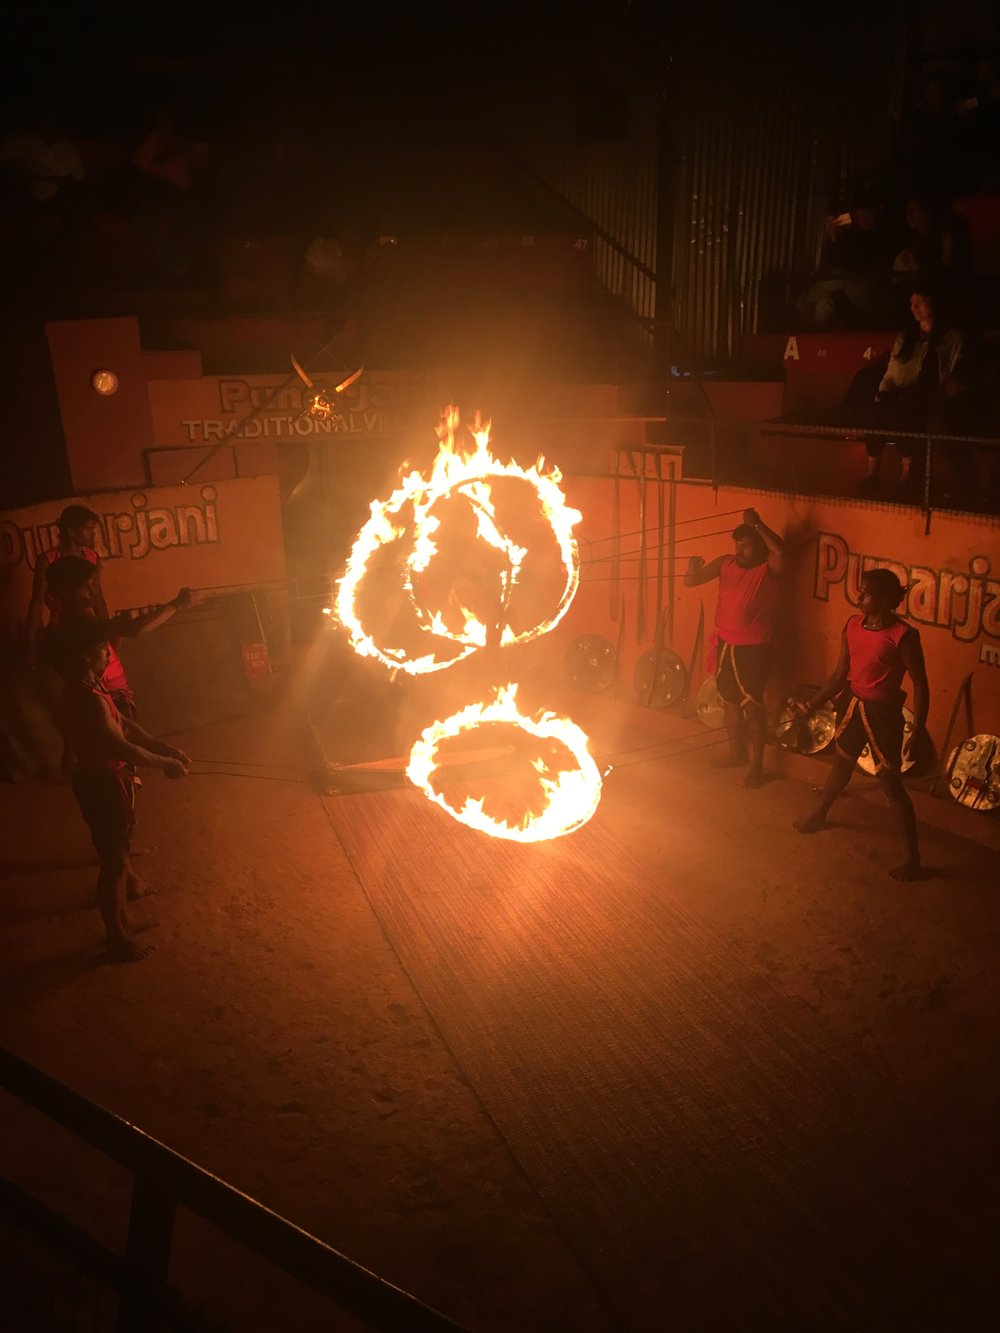 Martial Artists jumping through hoops of fire.